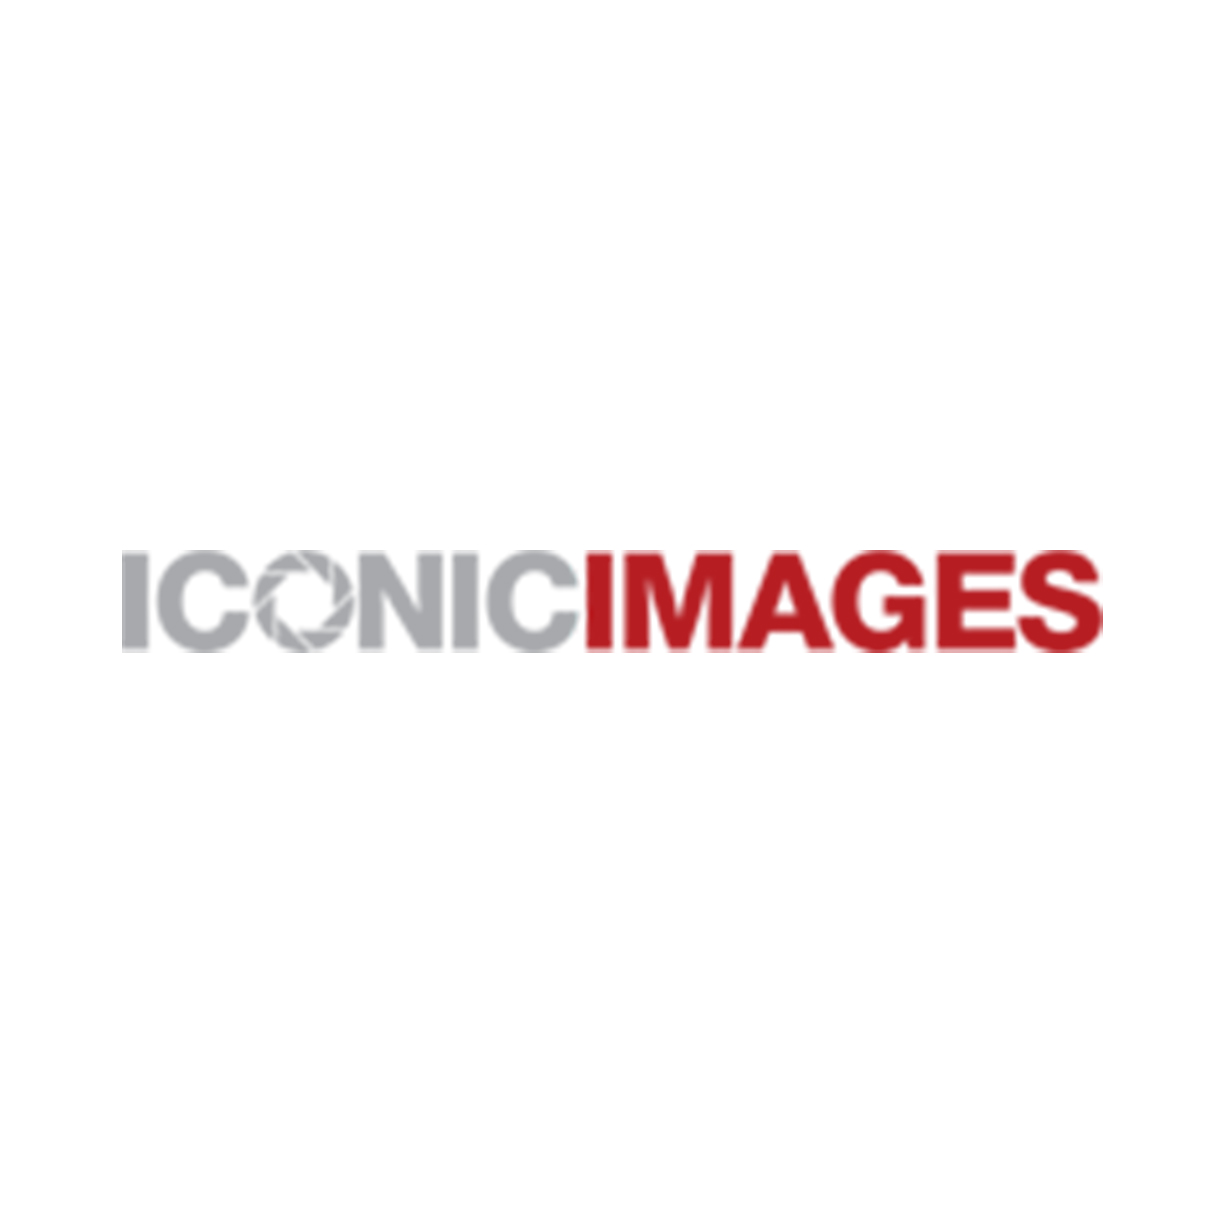 iconicImages.jpg